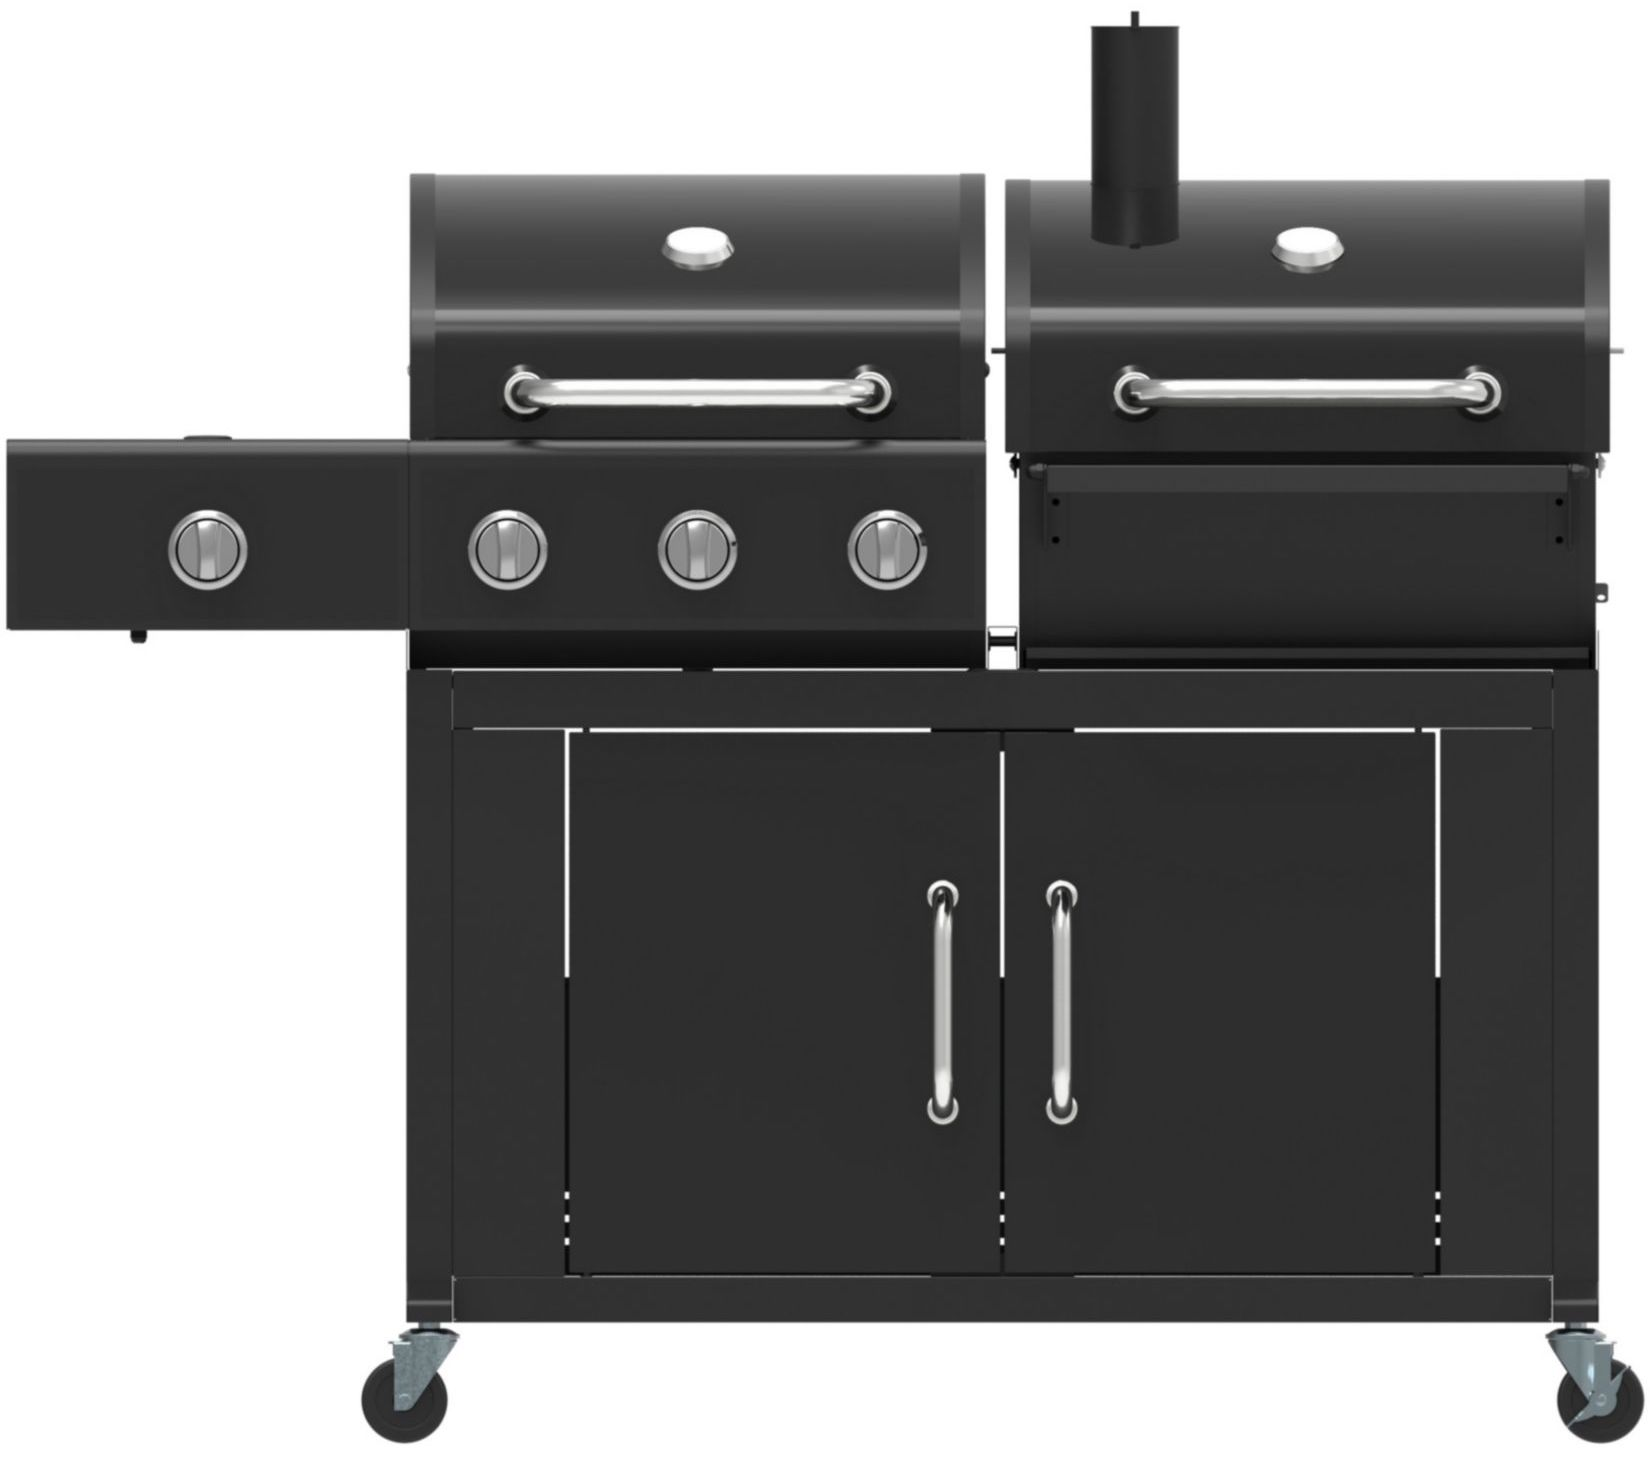 el fuego atlanta gas kohle kombigrill mit 2 thermometern uvm mytopdeals. Black Bedroom Furniture Sets. Home Design Ideas